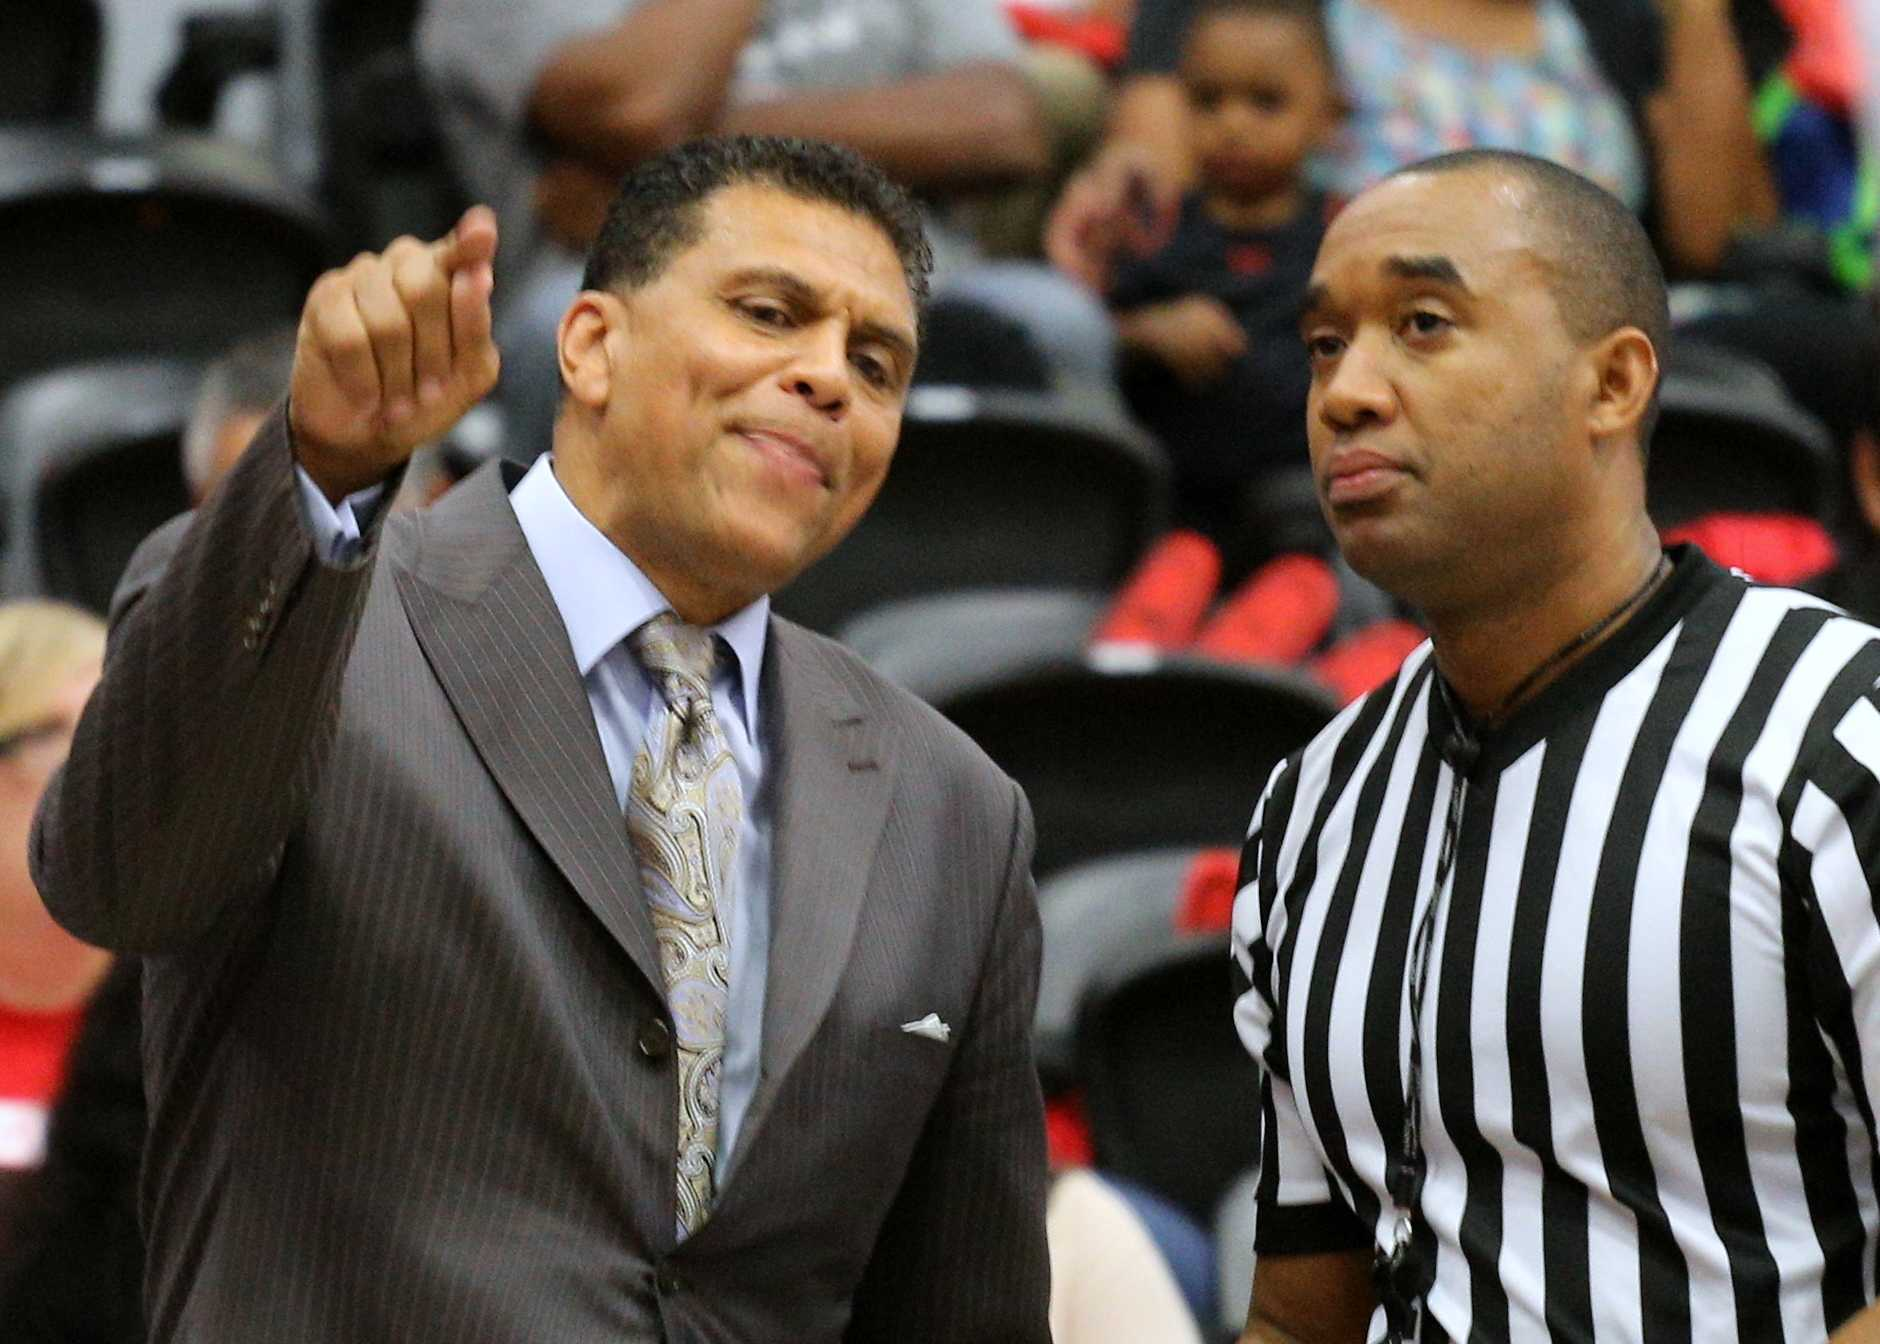 CSUN men's basketball head coach Reggie Theus argues with a referee in Thursday's game against UC Santa Barbara, February 25, 2016.